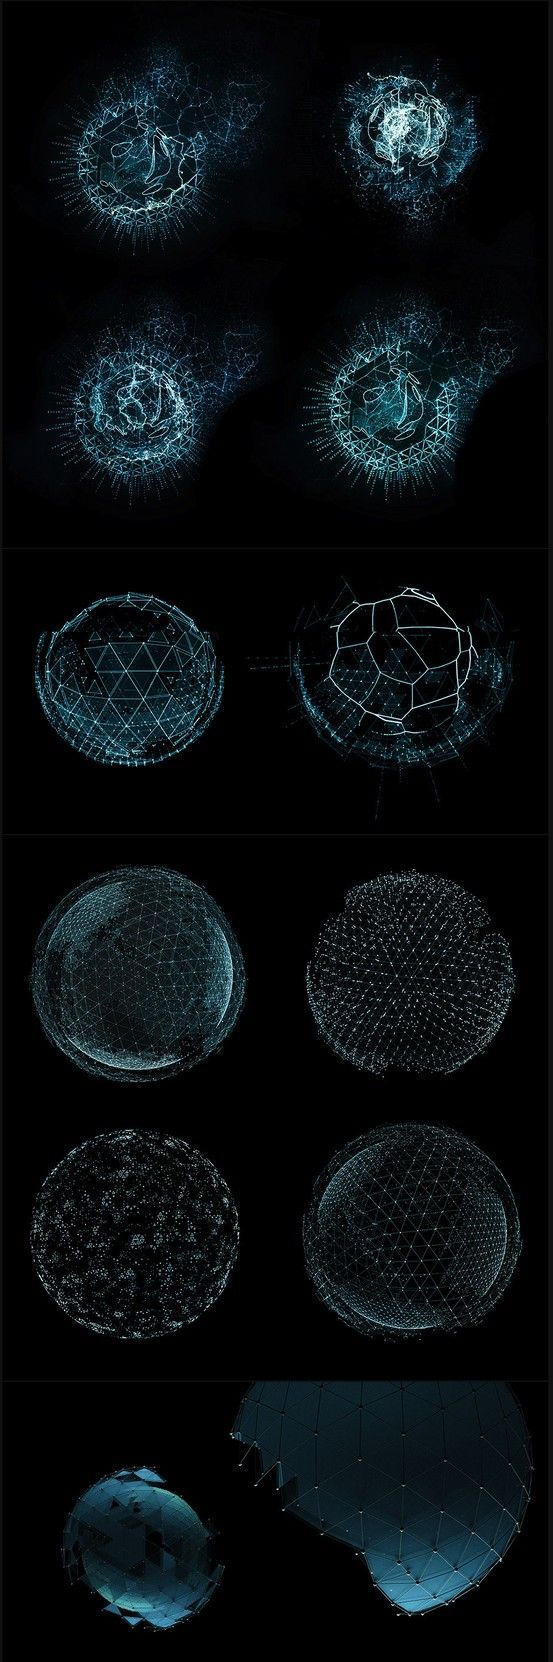 Awesome!/ Stuff/ Blue/ Interface/ Design/ Creative/ Fun/ Cool/ Neat/ Super/ Captivating/Graphics/ -#TRON #sphere #GMUNK. If you like UX, design, or design thinking, check out theuxblog.com